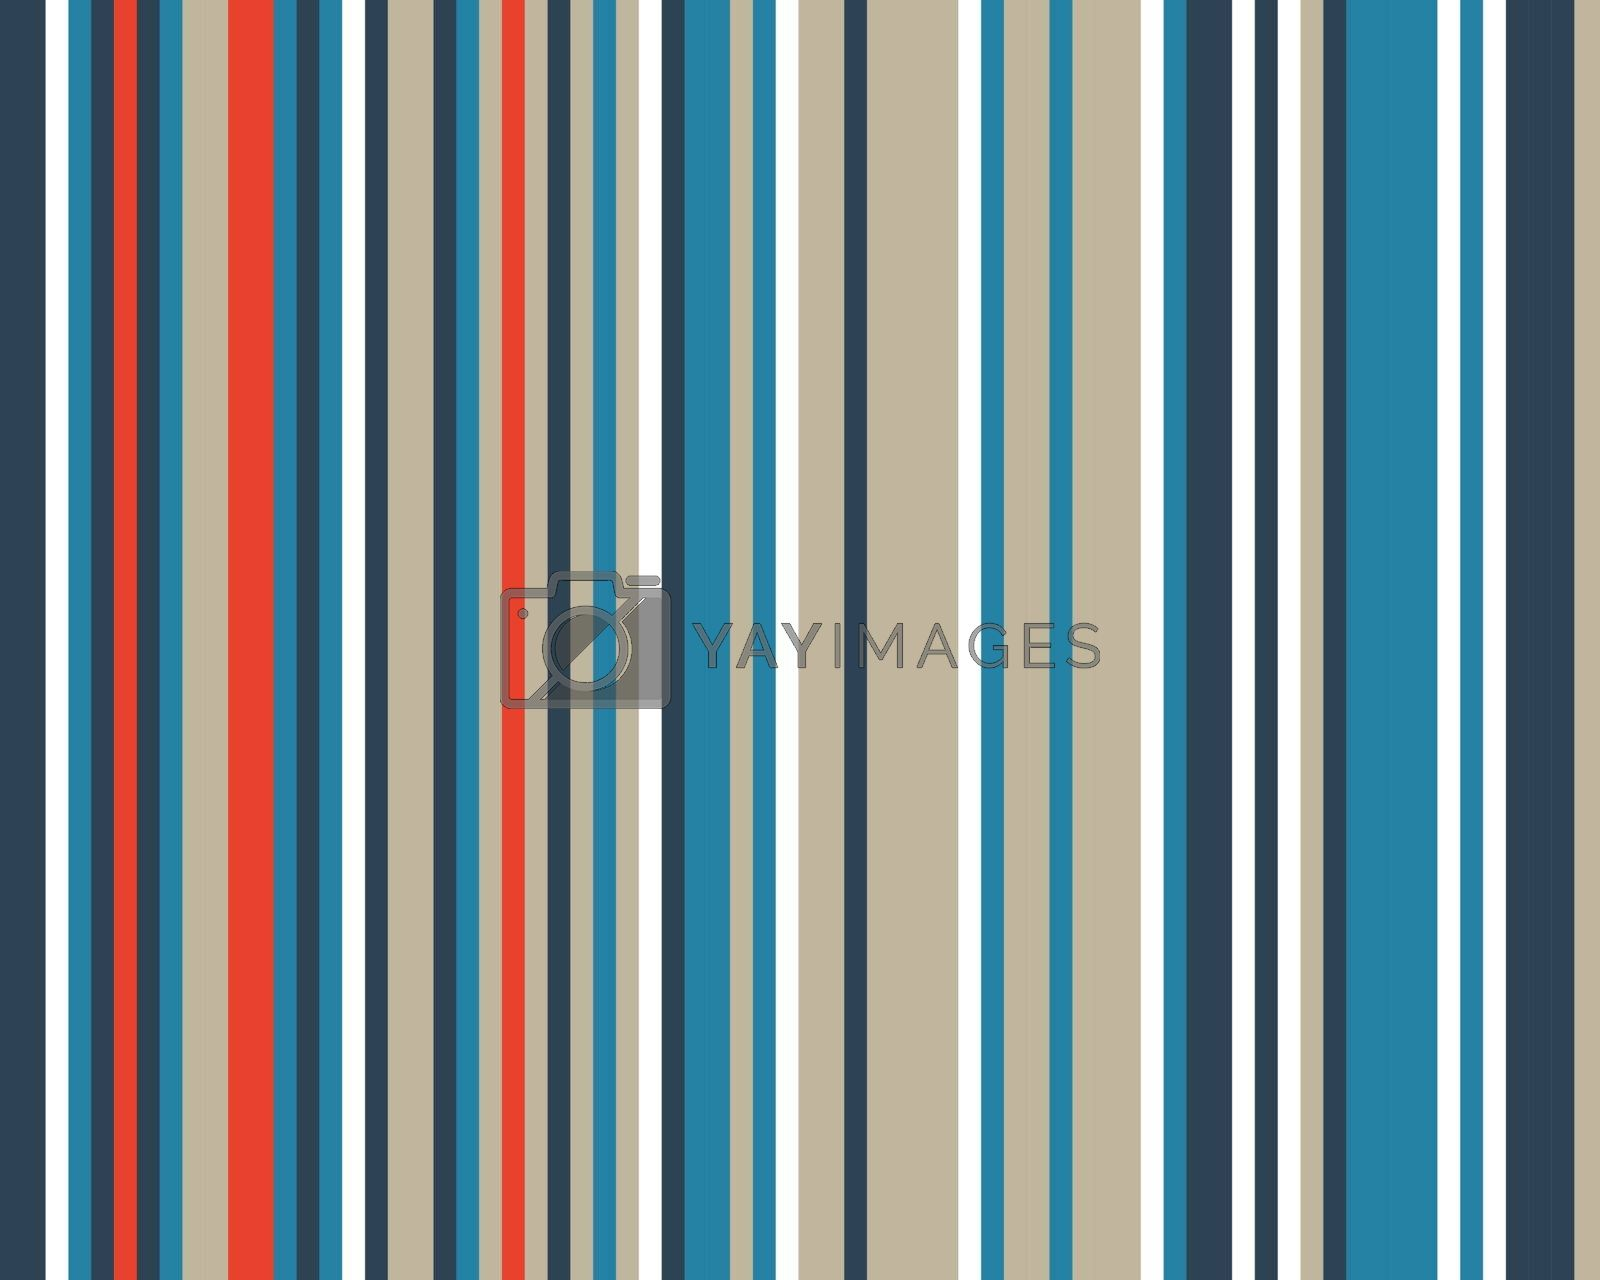 Simple pattern of colored lines, seamless  abstract geometric background